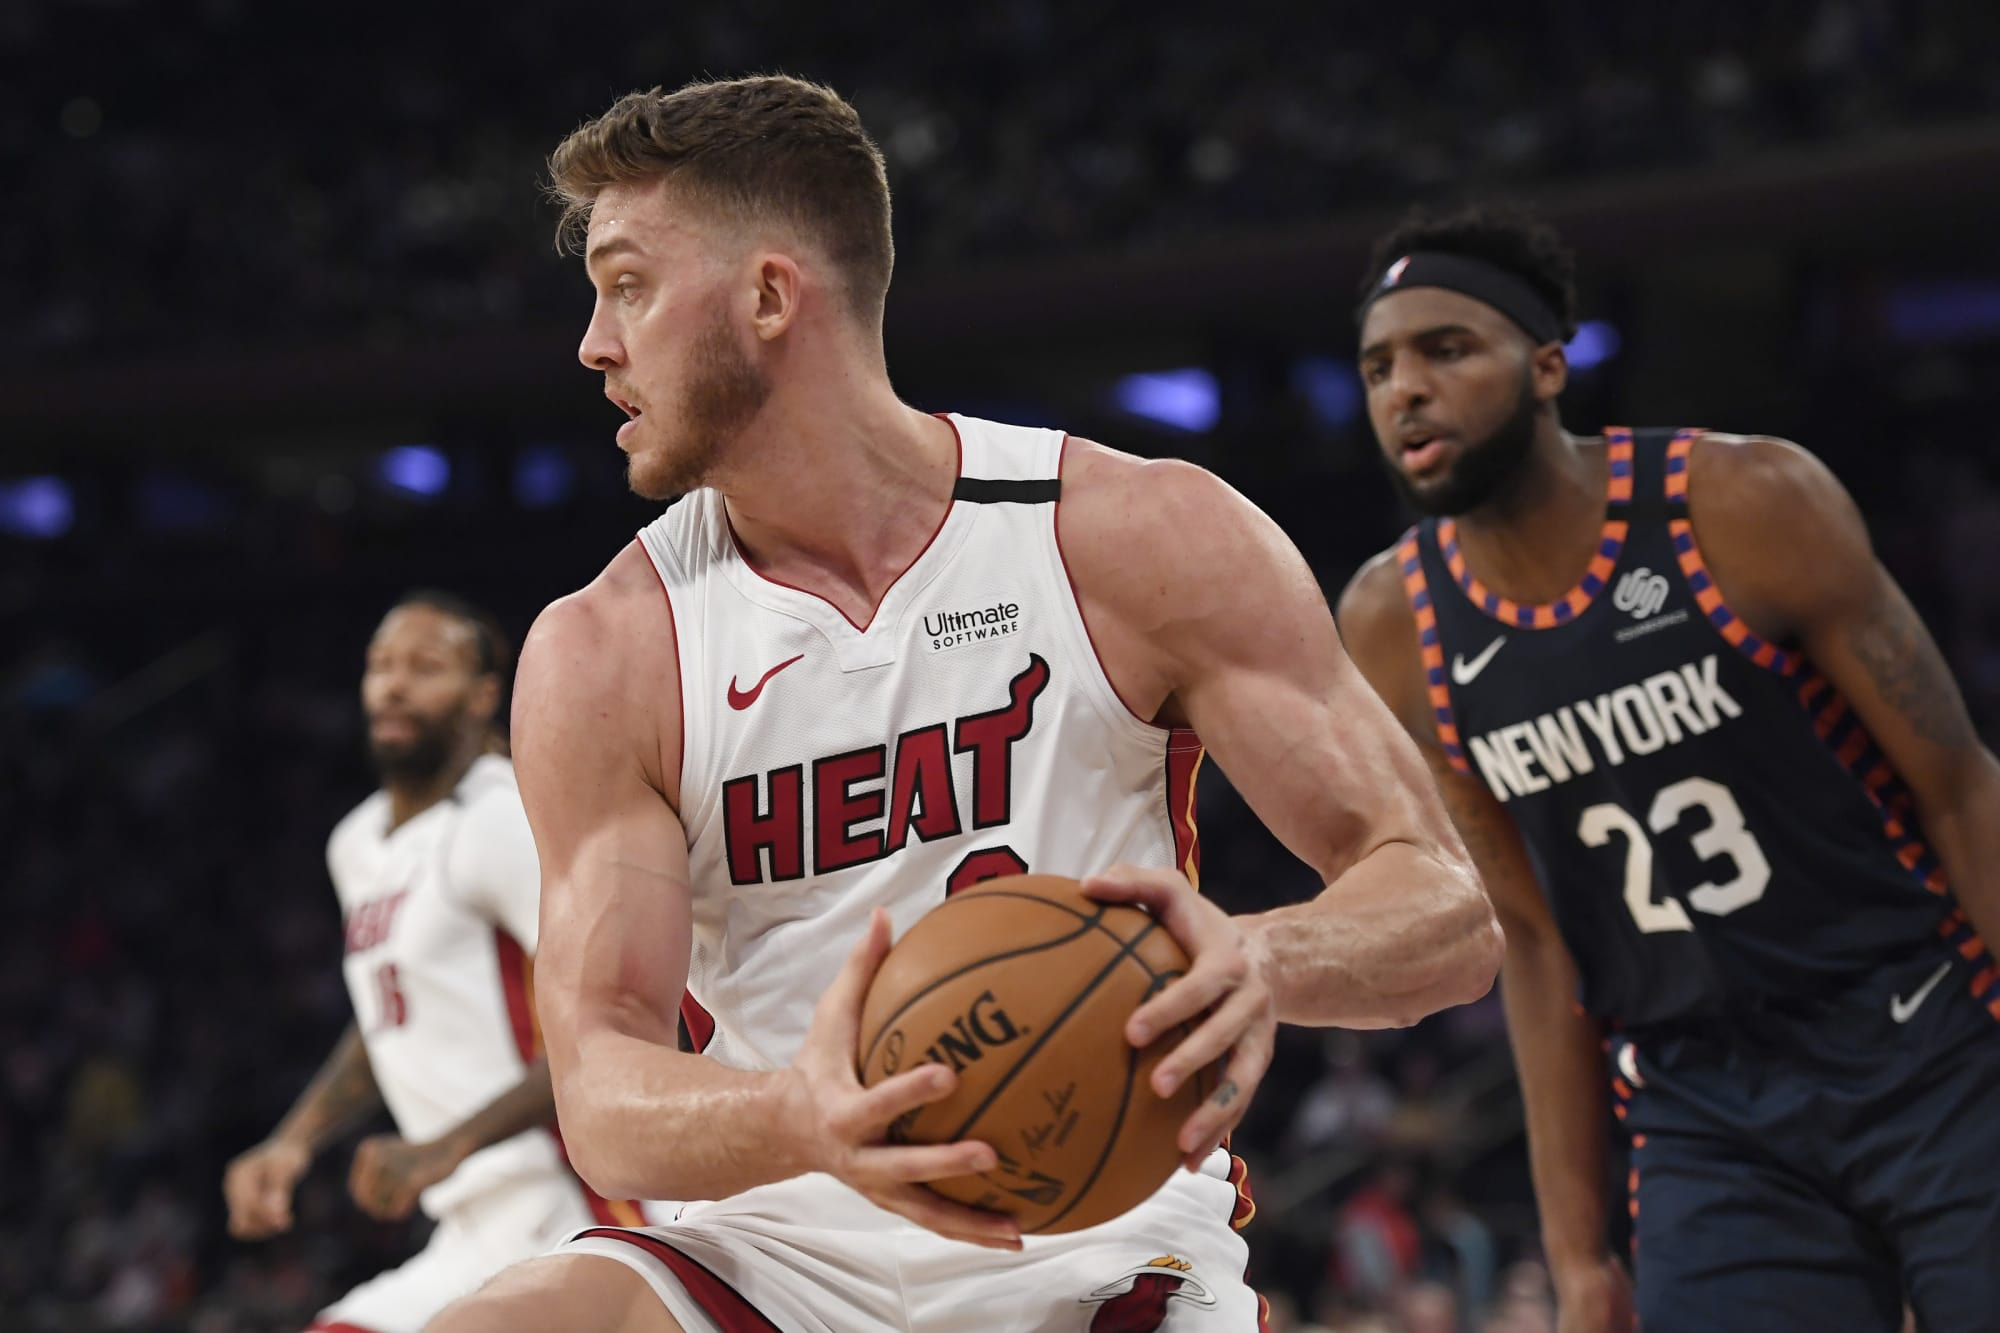 Miami Heat: Was the starting job ever Meyers Leonard's to begin with?